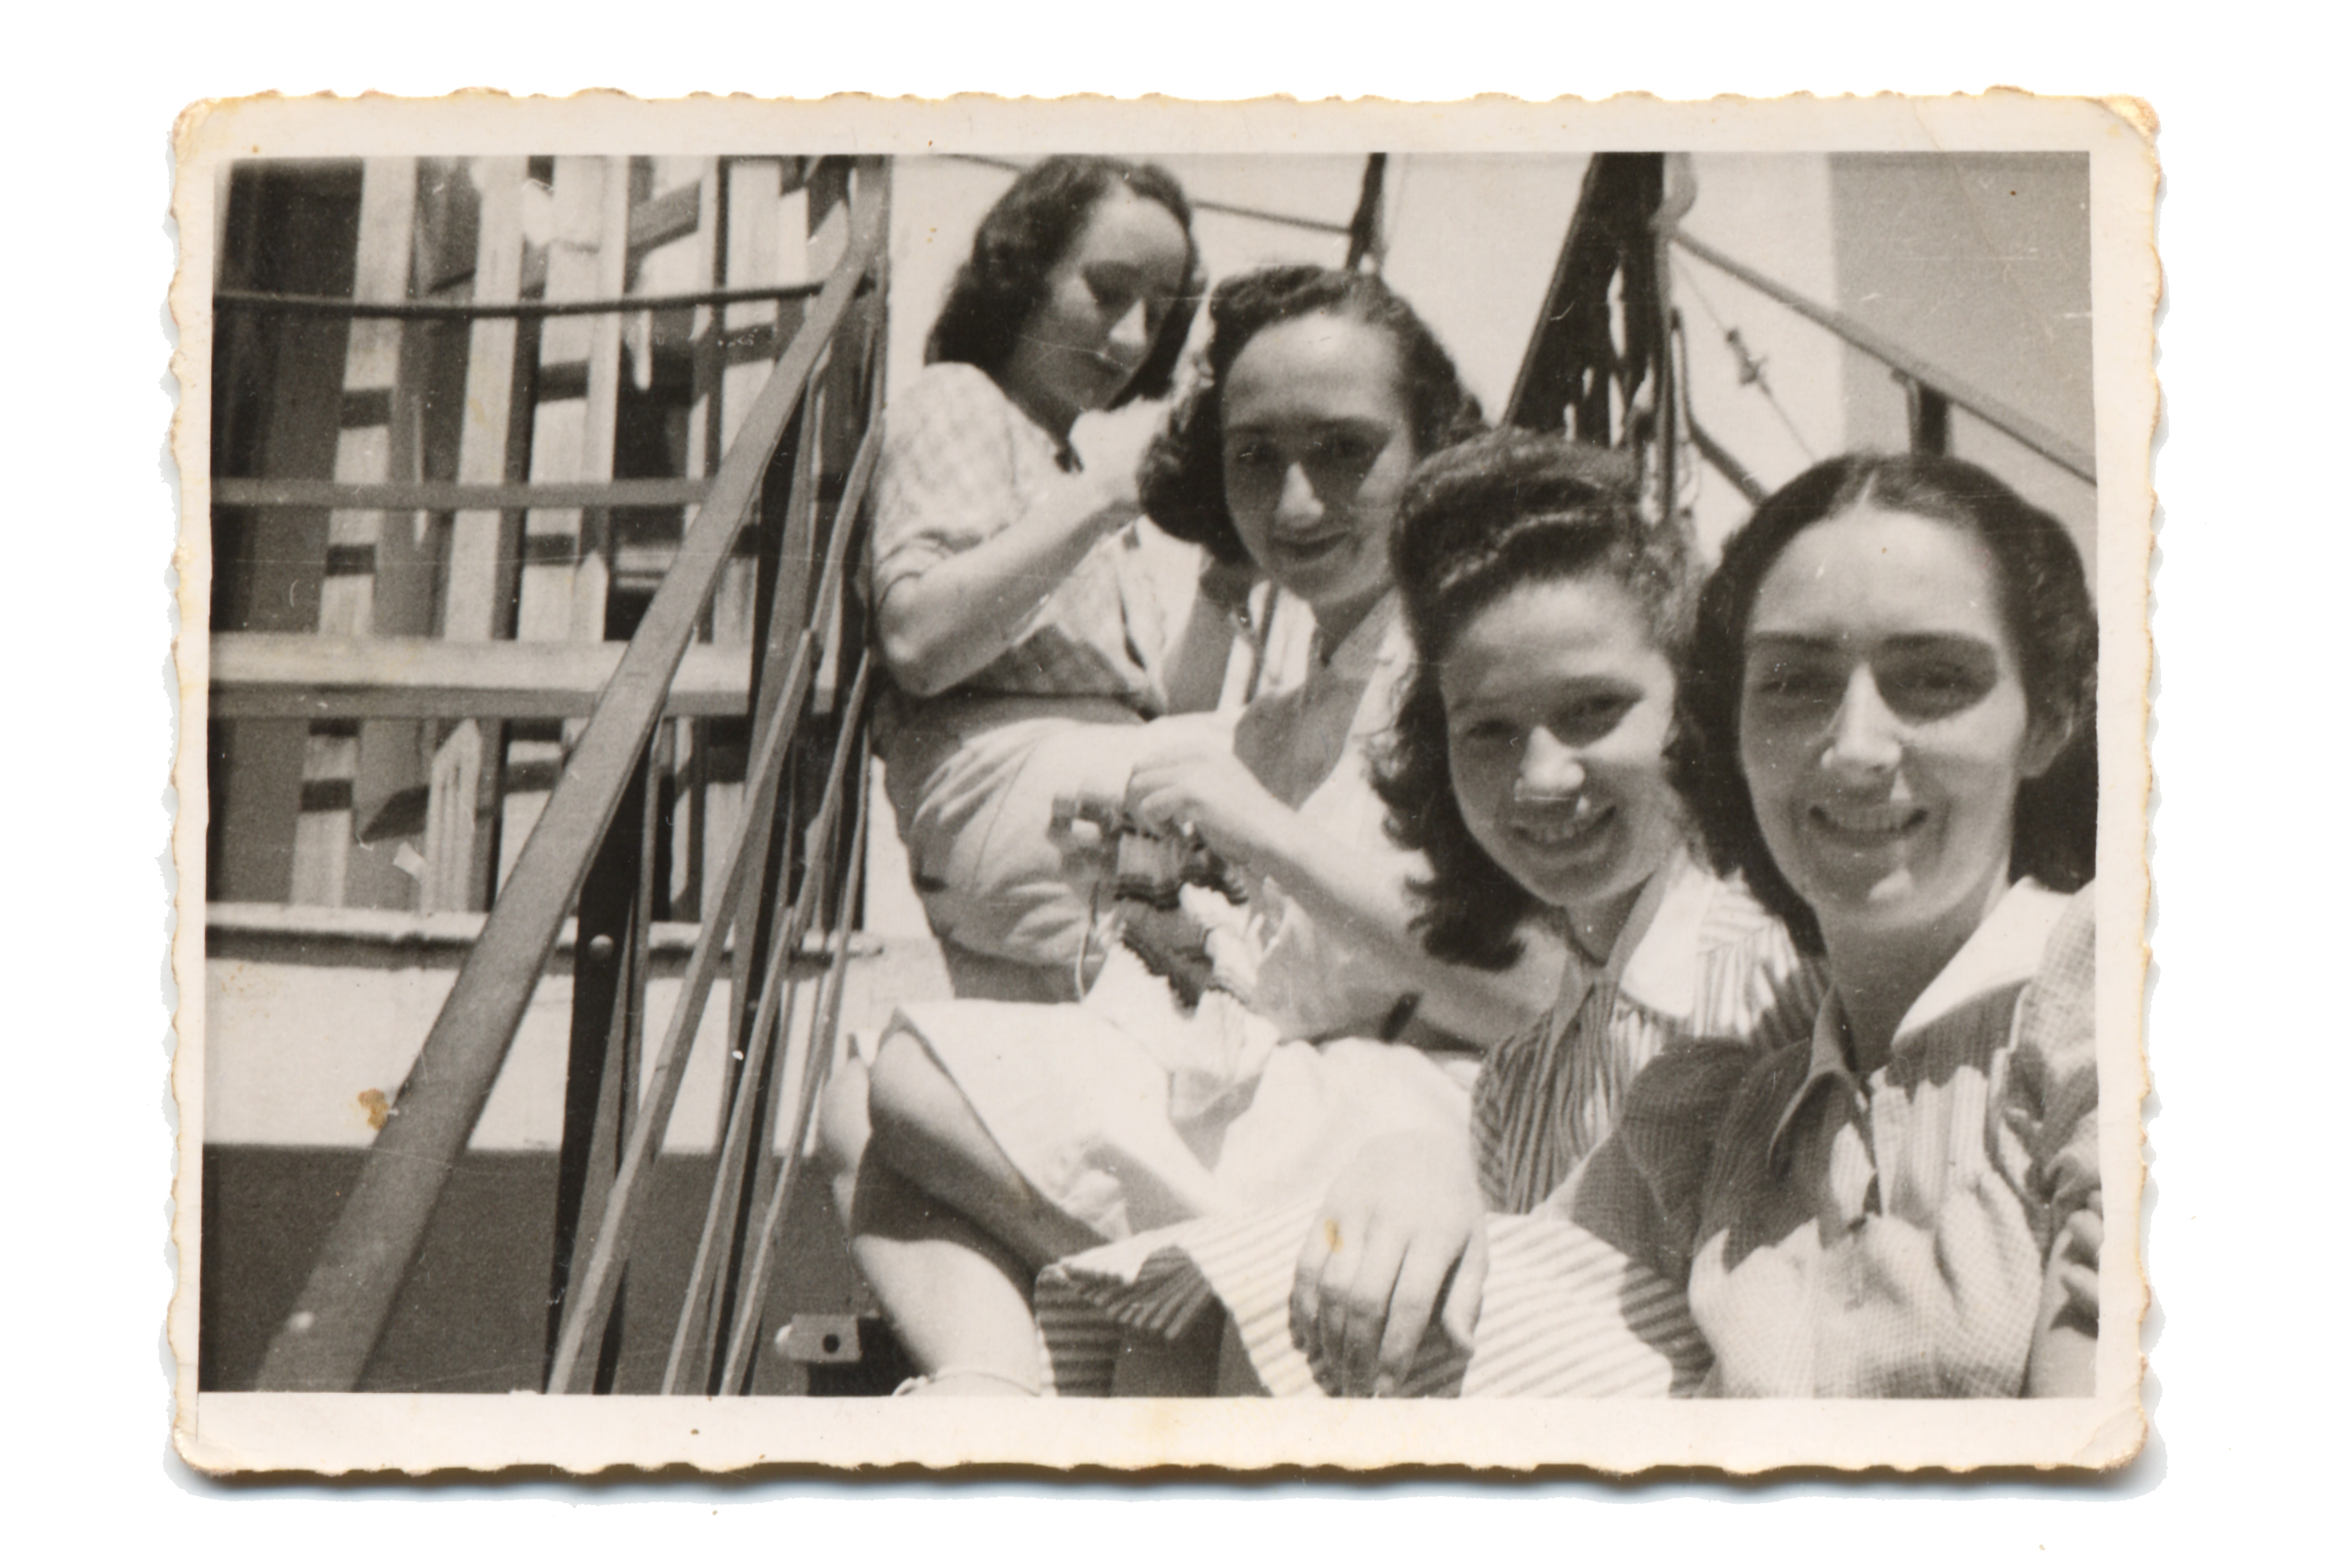 Rene Molho and relatives in the ghetto of Thessaloniki